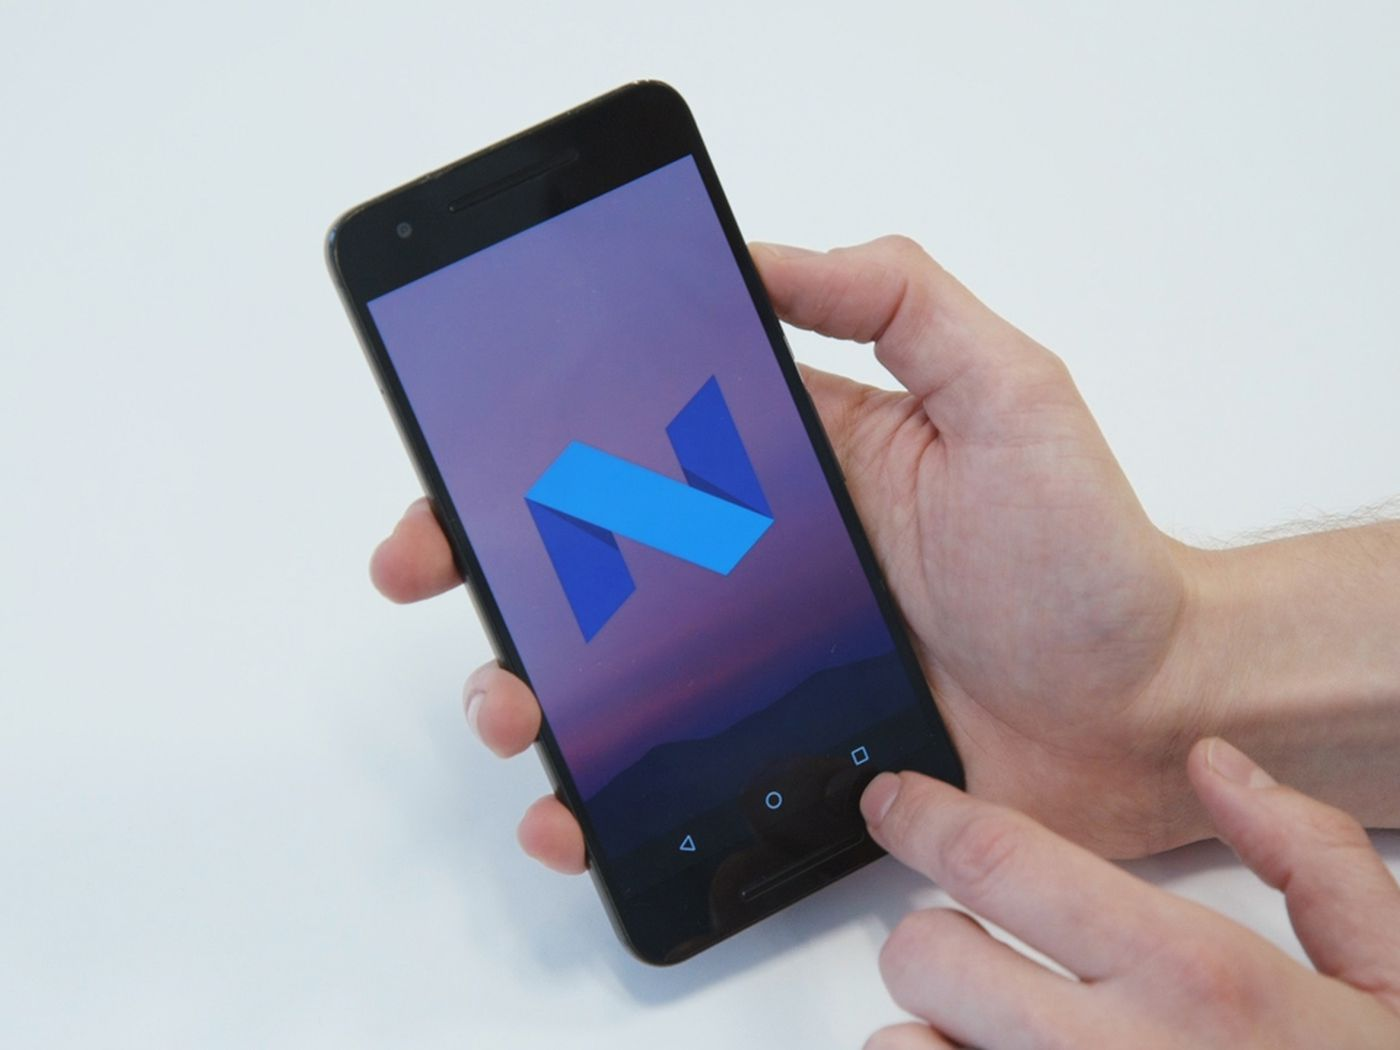 Android N can show emergency information on your lock screen